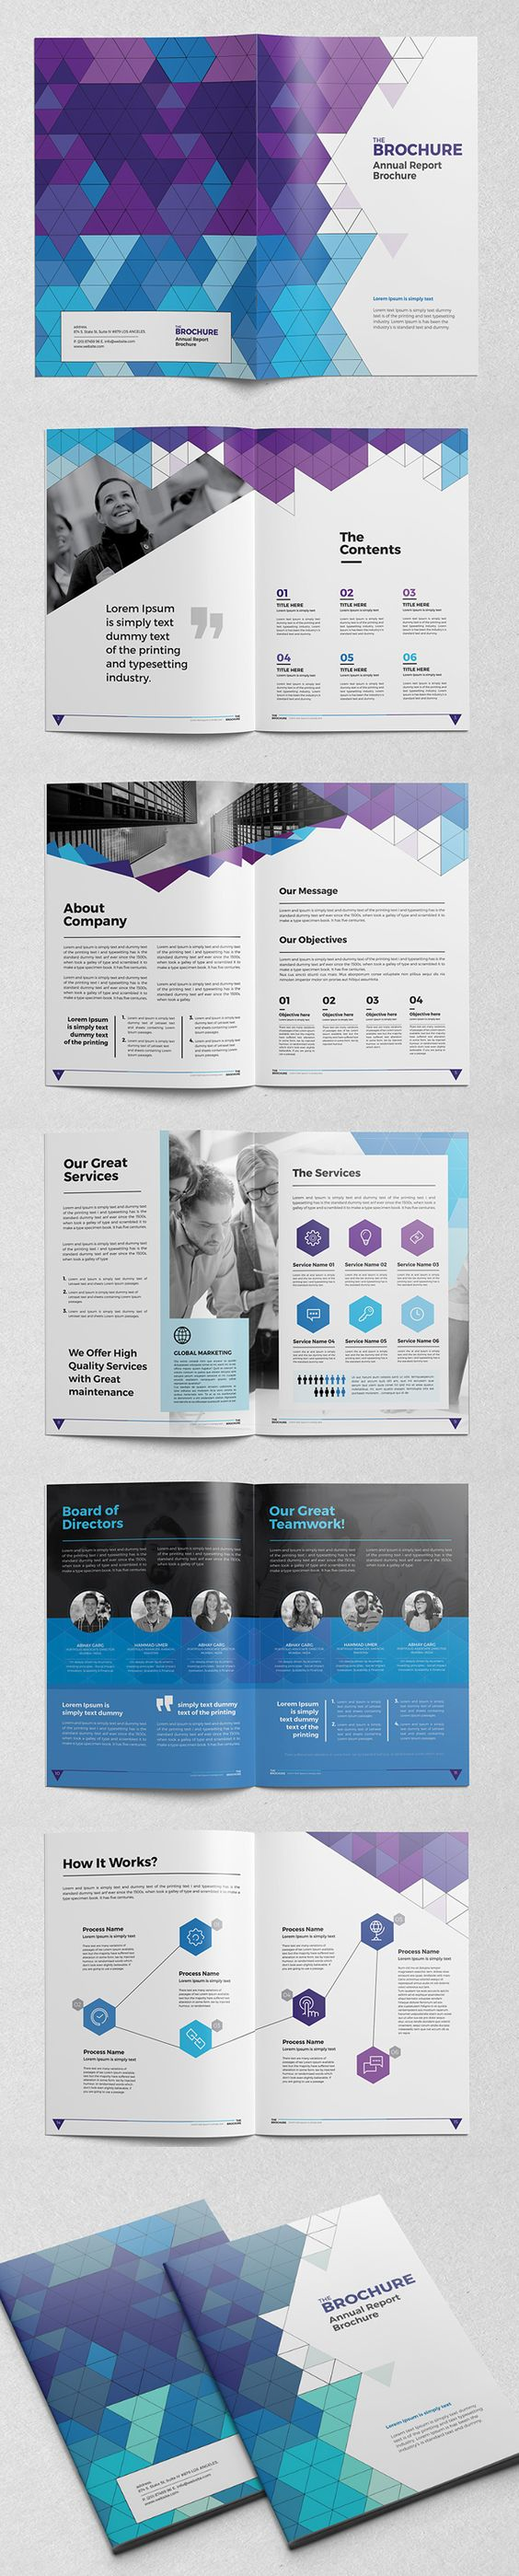 brochure template indesign - abstract brochure catalog indesign template booklet